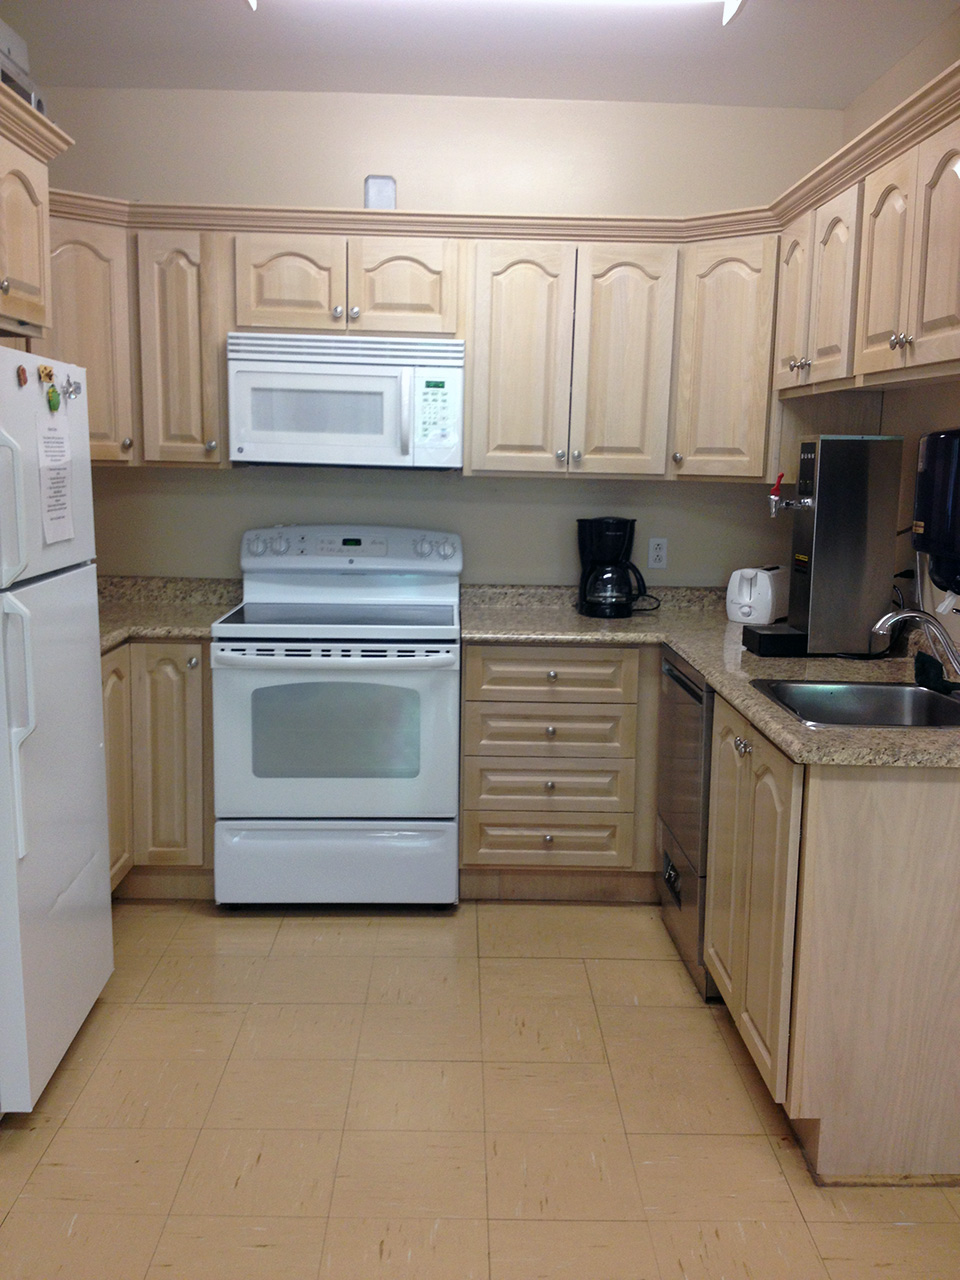 Recreation Kitchen Renovations & Appliances